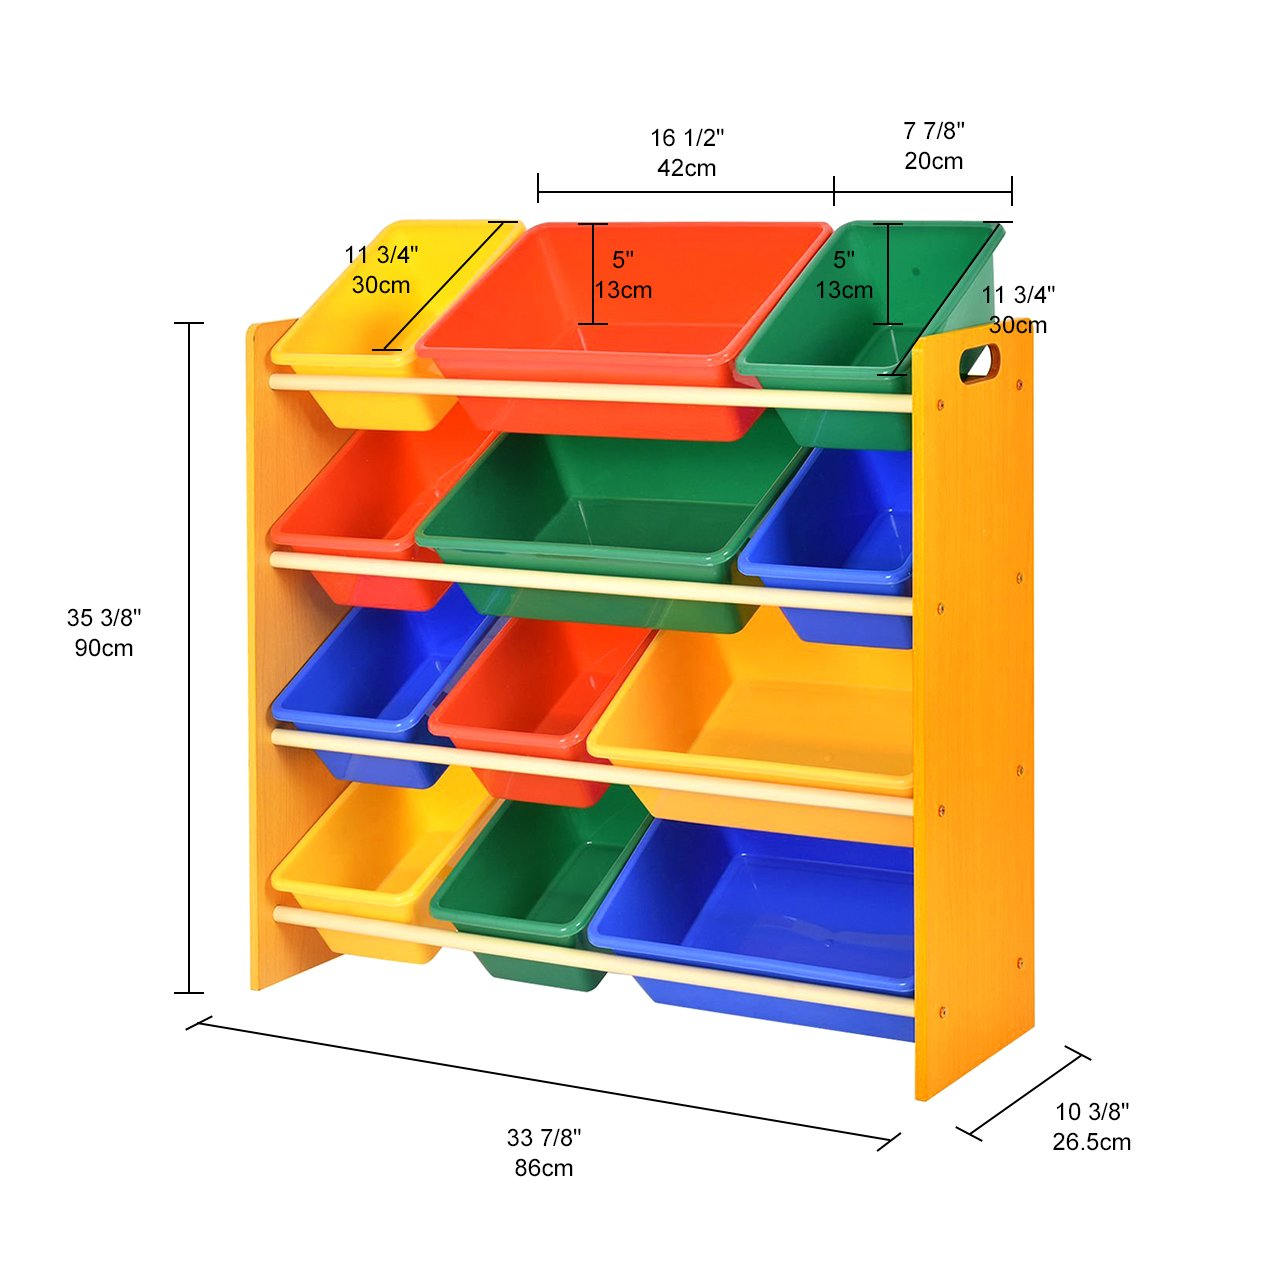 SortWise ® Kids Toy Storage Organizer with 12 Plastic Bins for Kids Bedroom Playroom, Multi-Colors Natural/Primary (4-Tier / 12 Plastic Bins)